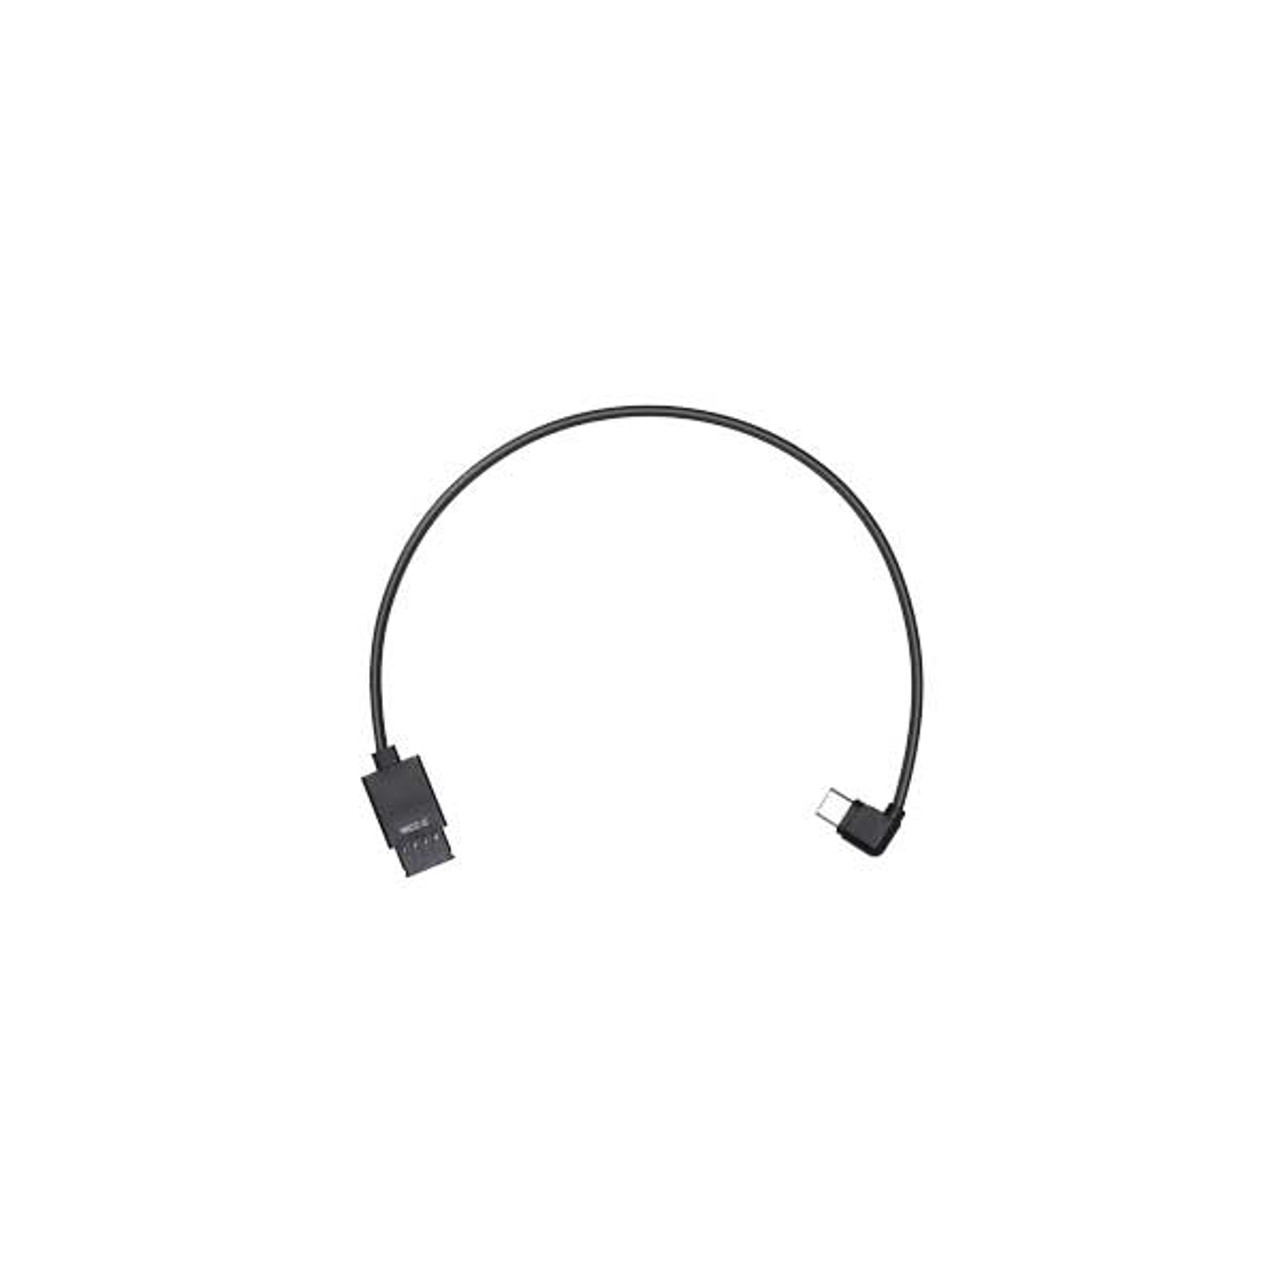 DJI Ronin-S Multi-Camera Control Cable (Type-B)